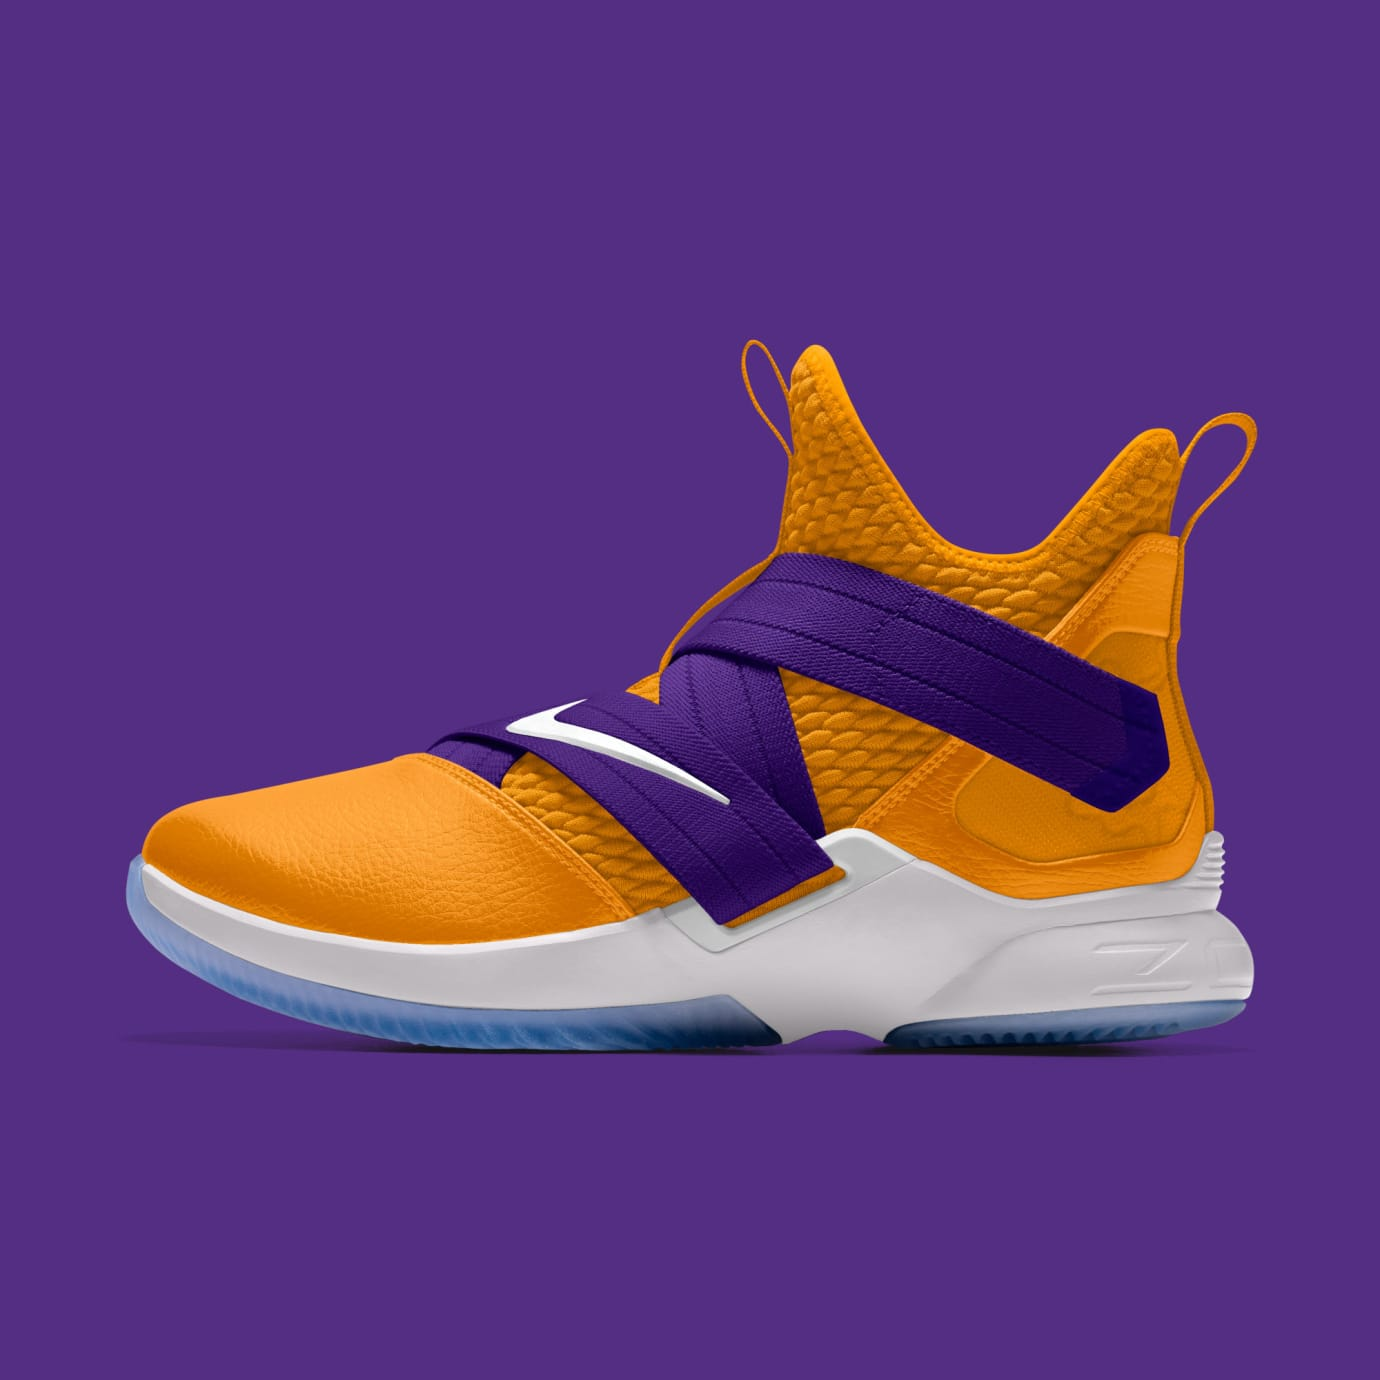 meet 52501 bba24 NIKEiD LeBron Soldier 12 Lakers